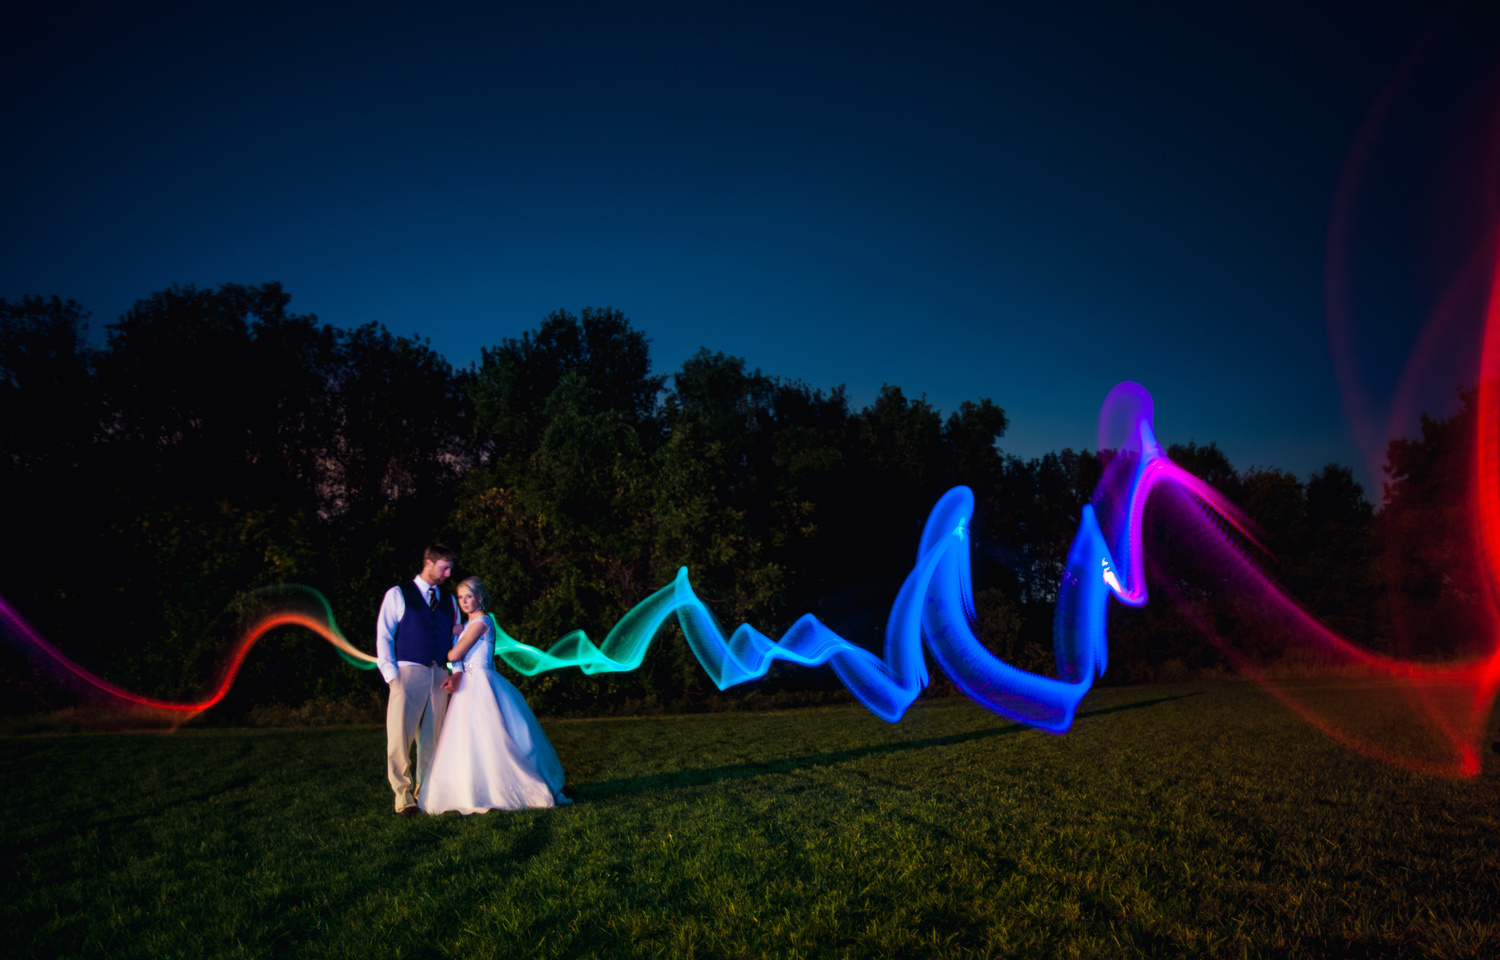 How to Incorporate Night Photography Into the Wedding Day  Fstoppers